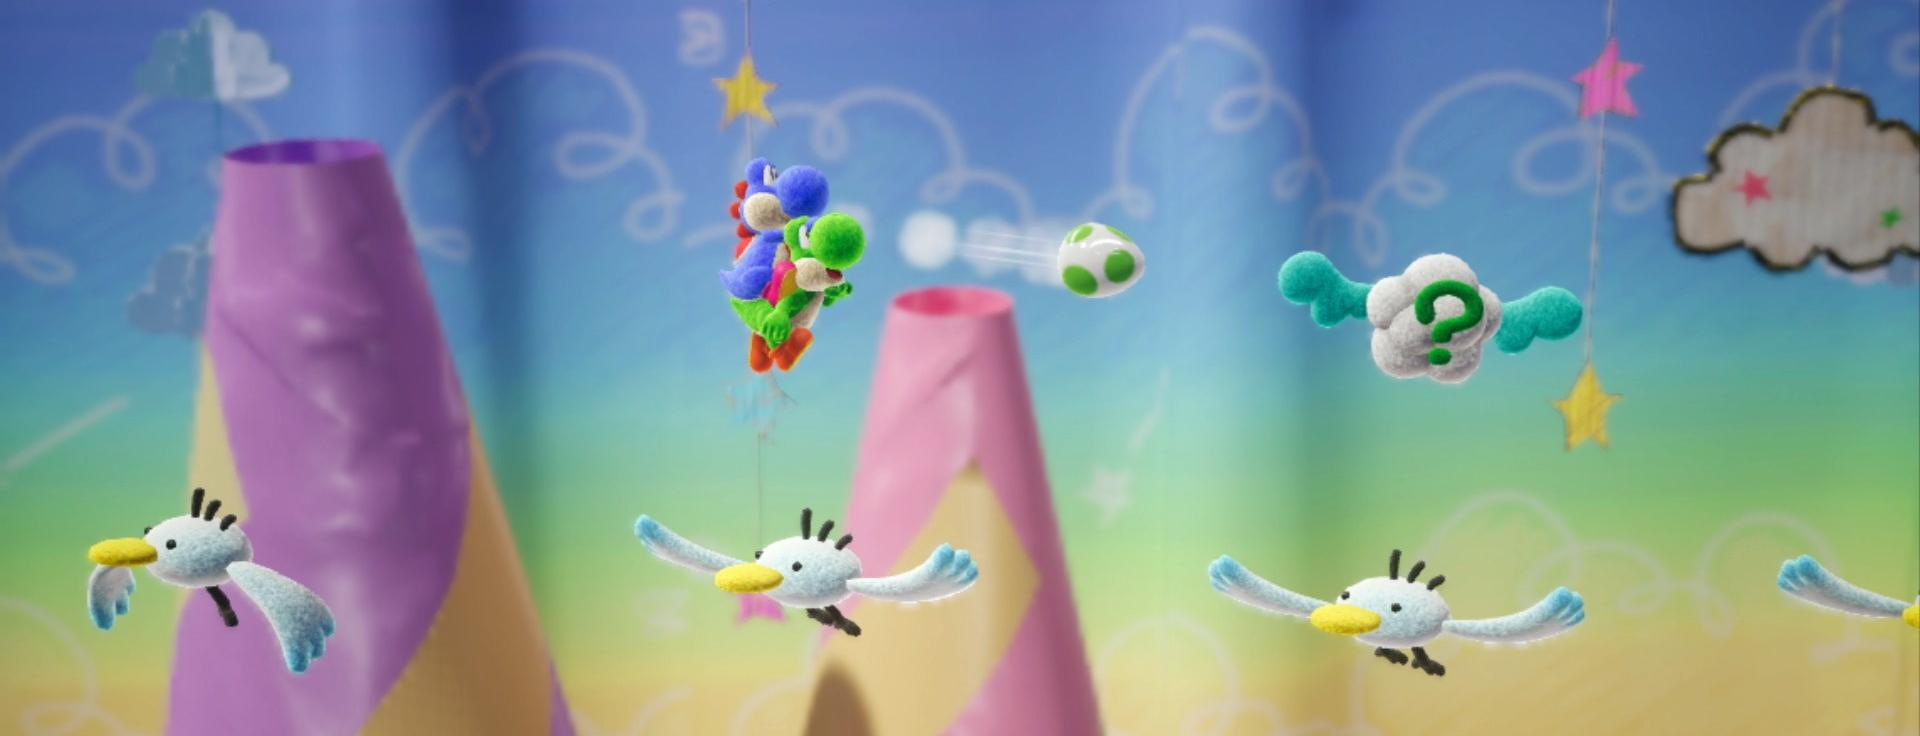 Is 'Yoshi's Crafted World' Worth Buying The Switch For? Here's What The Reviews Say